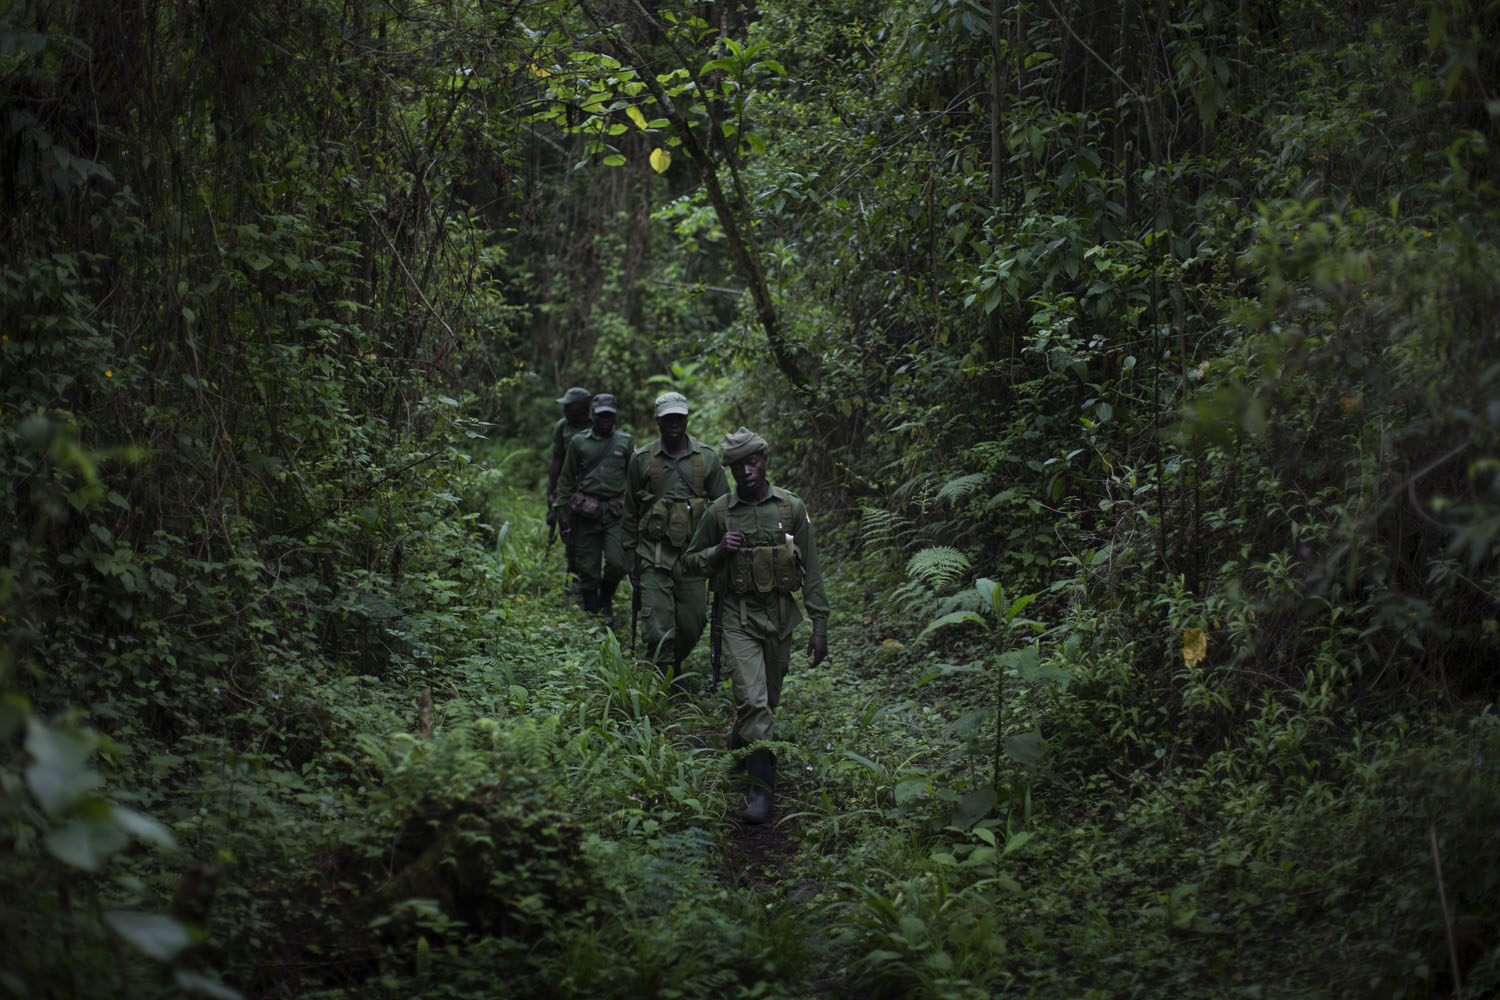 The New York Times: Oil vs. the Environment in an African ParkRangers in Virunga National Park in the Democratic Republic of Congo. Environmentalists have been fighting to keep a British oil company from drilling in Africa's oldest national park.